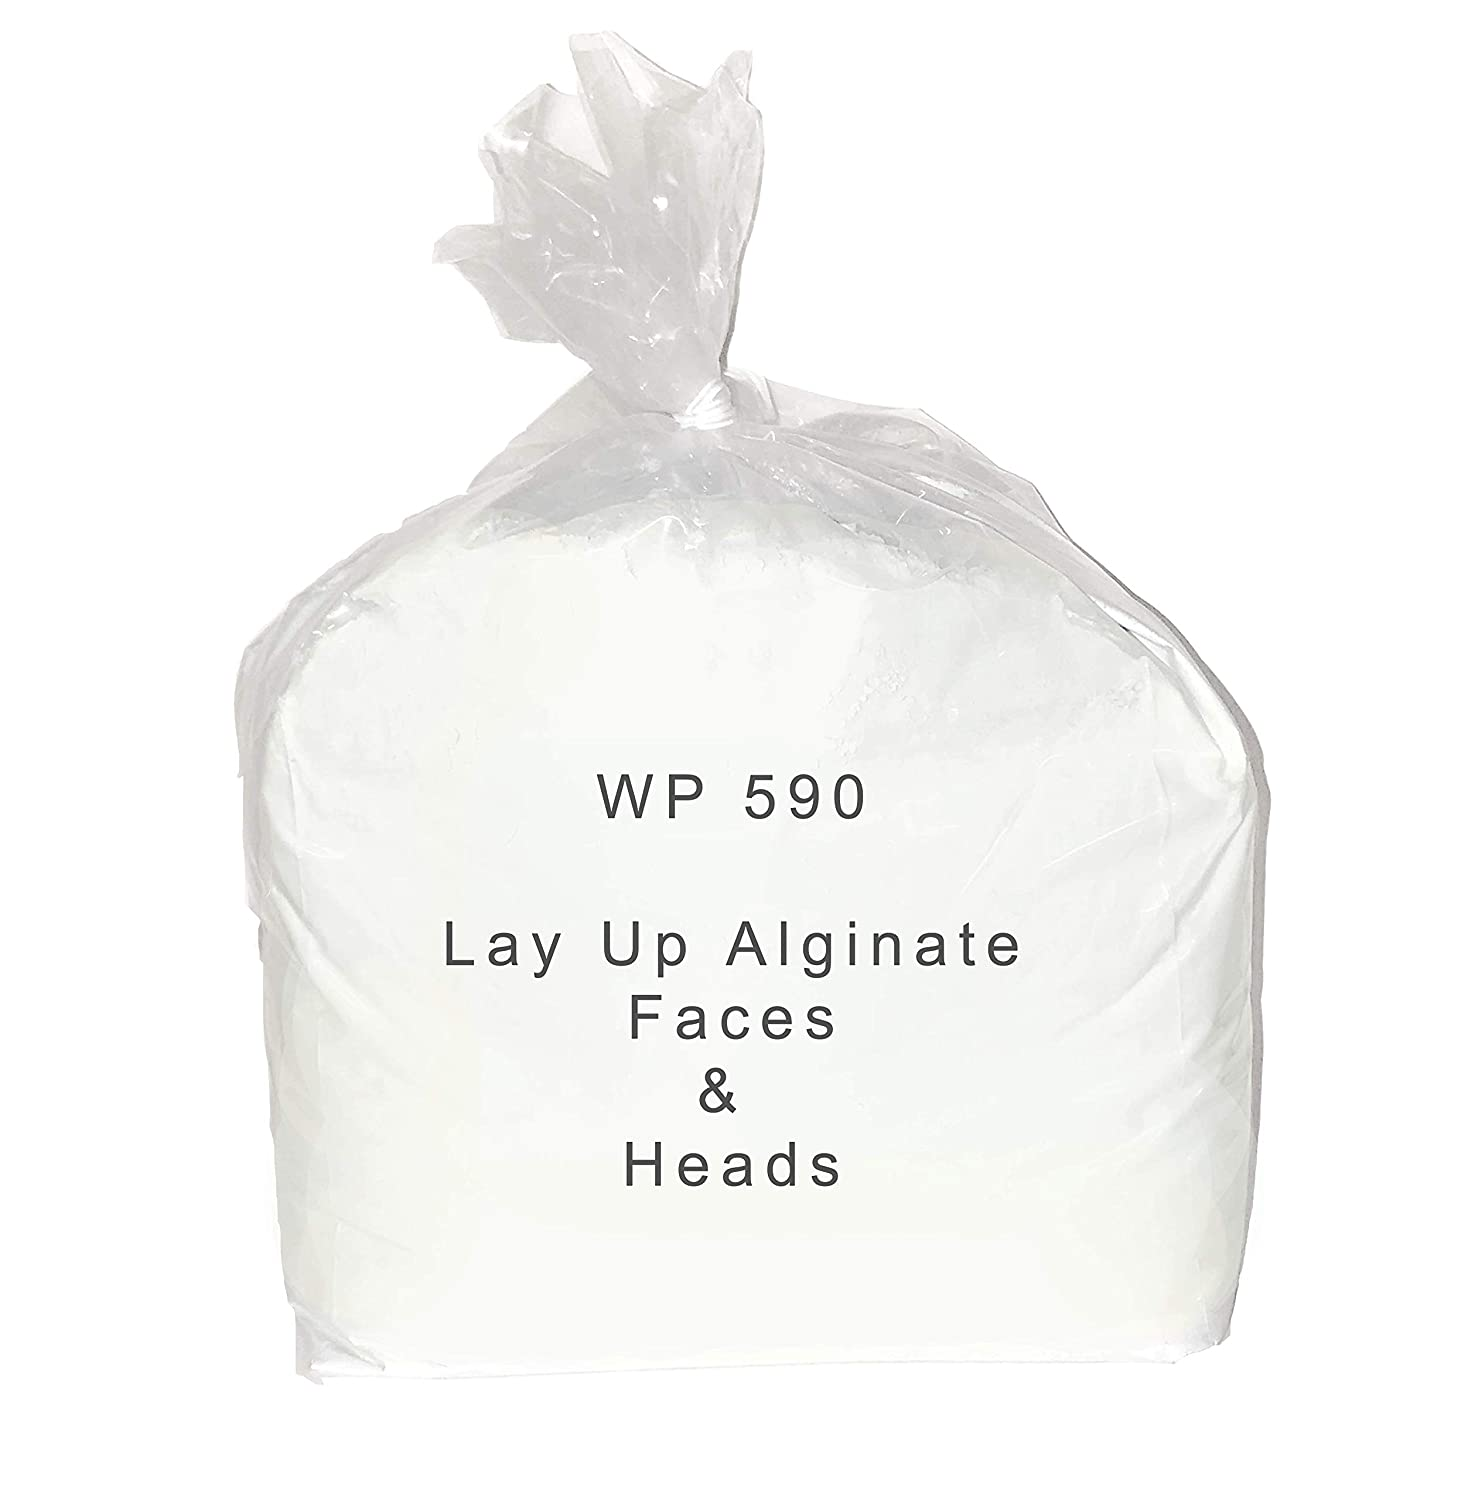 Alginate - LifeCasting Moulding Powder for Faces & Heads - 1 pound1 Accu-Cast